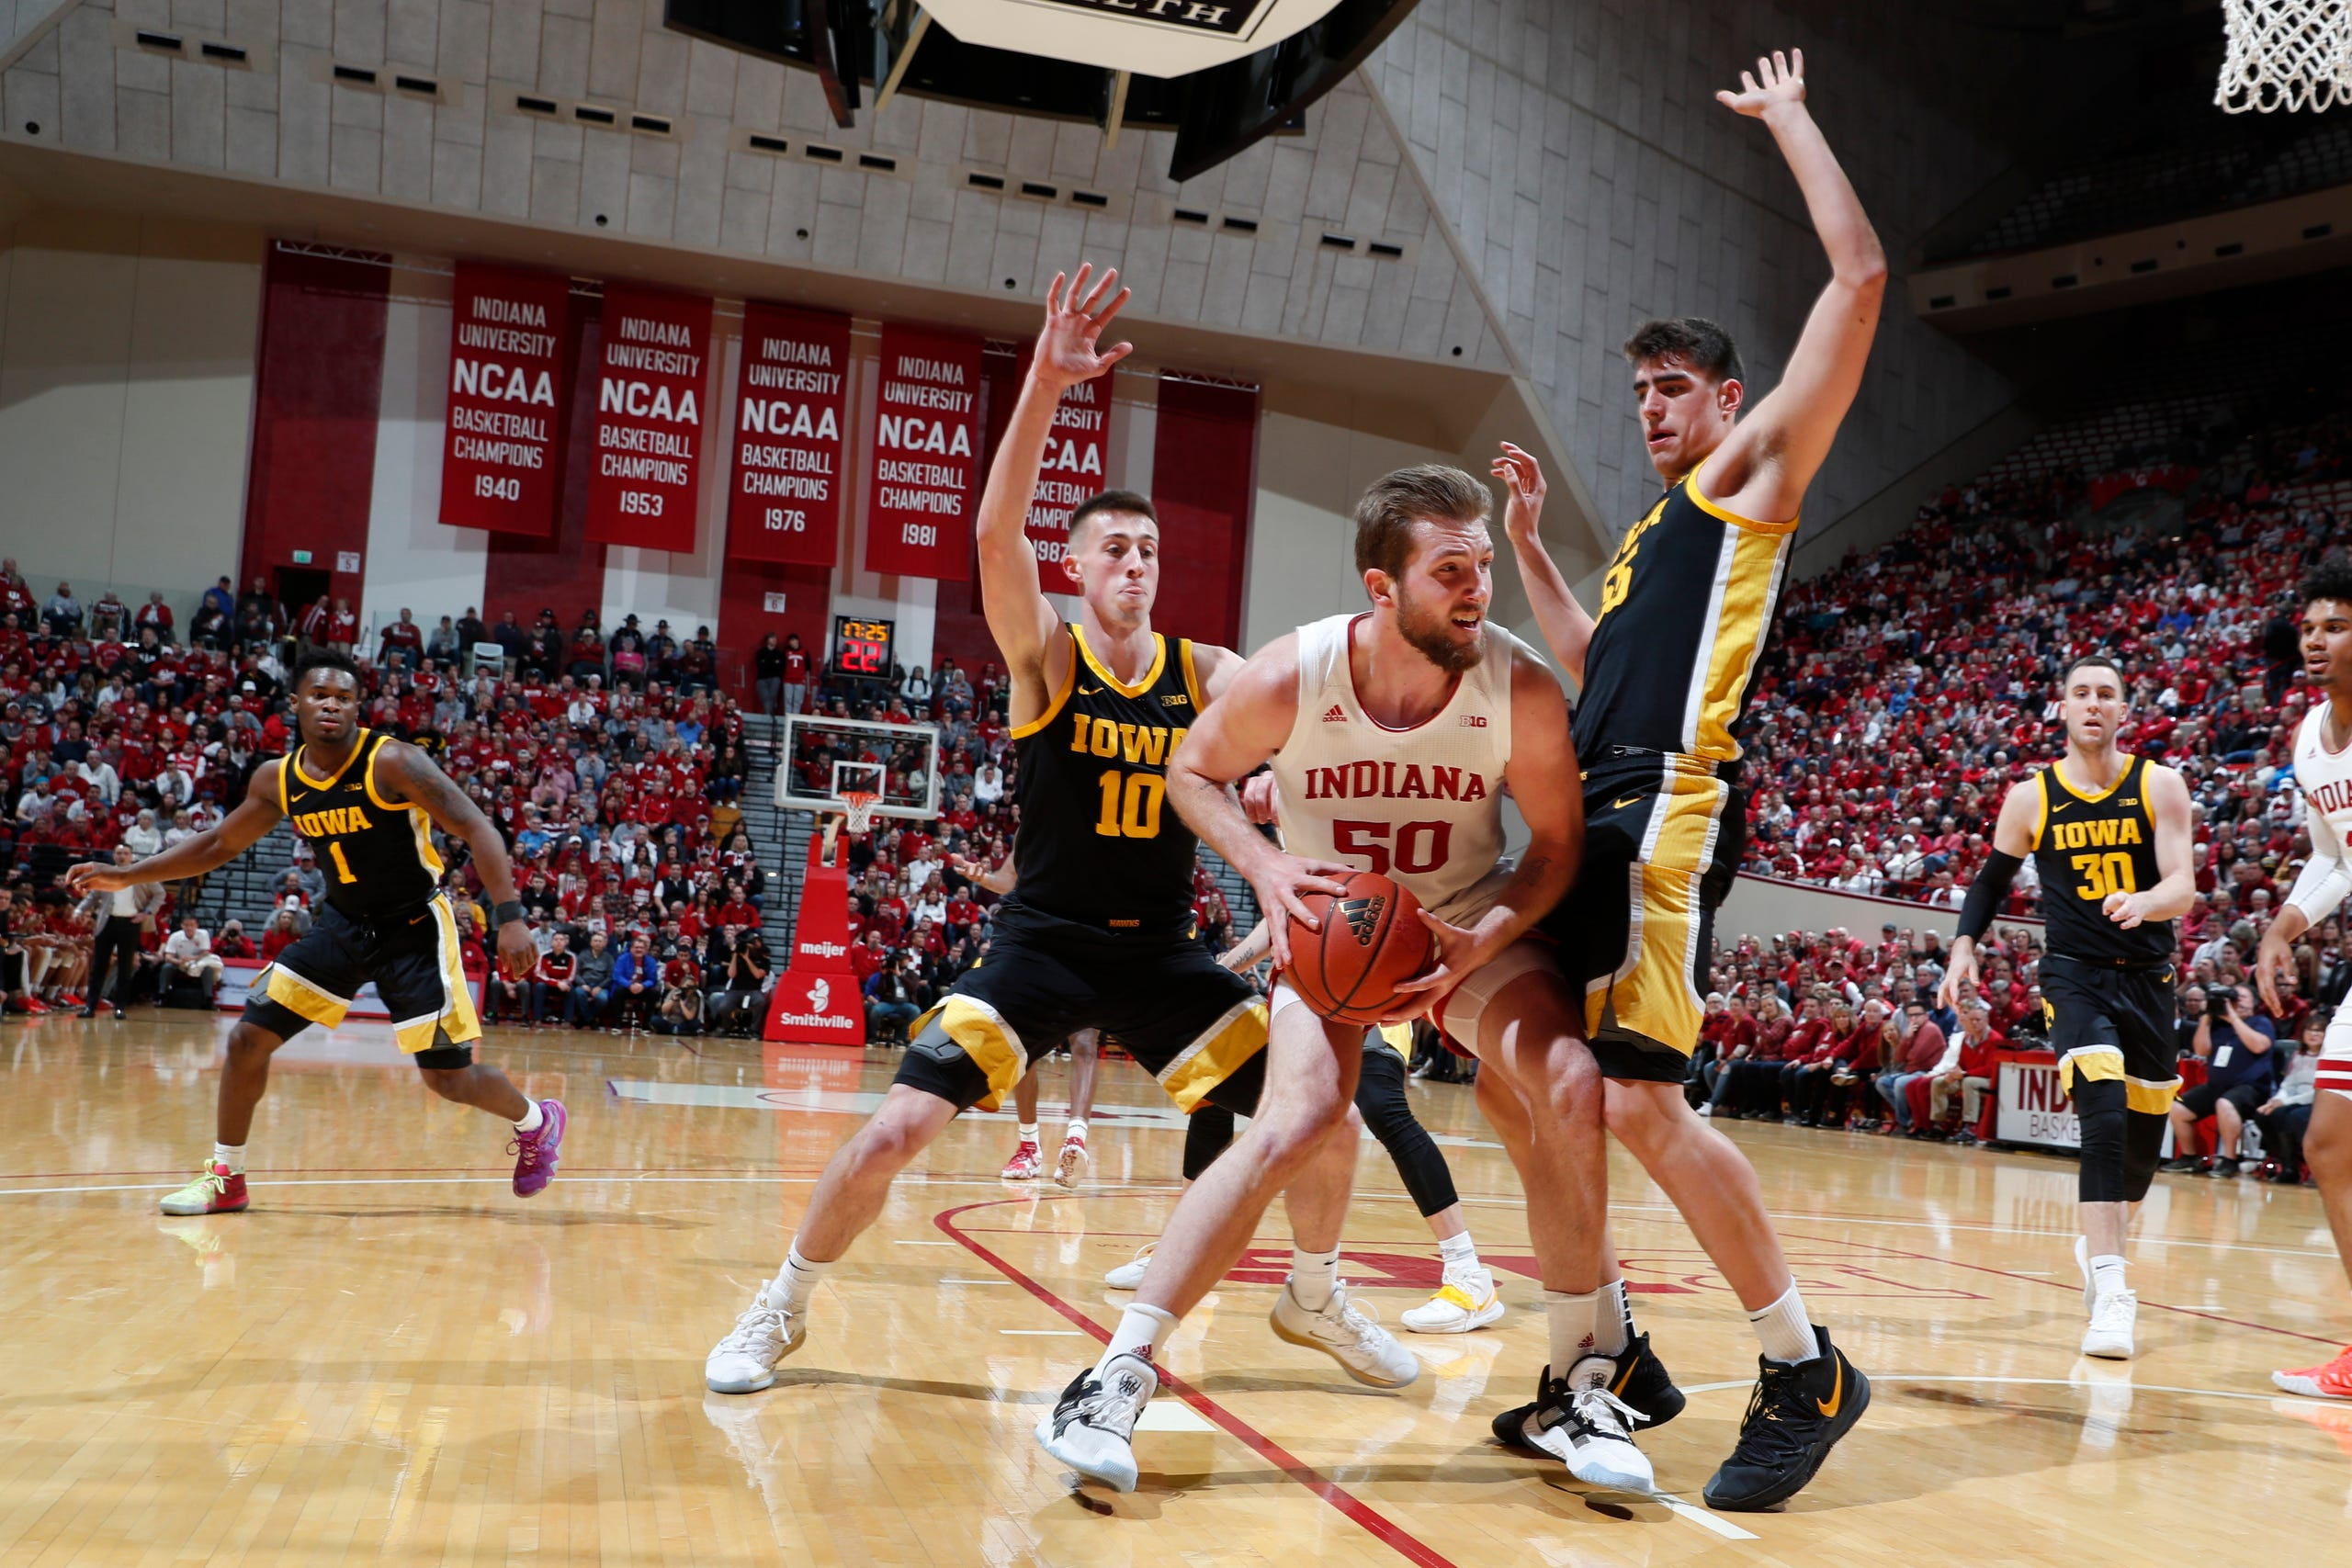 Feb. 13, 2020; Bloomington, Indiana, USA; Indiana Hoosiers forward Joey Brunk (50) is guarded by Iowa Hawkeyes center Luka Garza (55) and guard Joe Wieskamp (10)  during the first half at Simon Skjodt Assembly Hall.